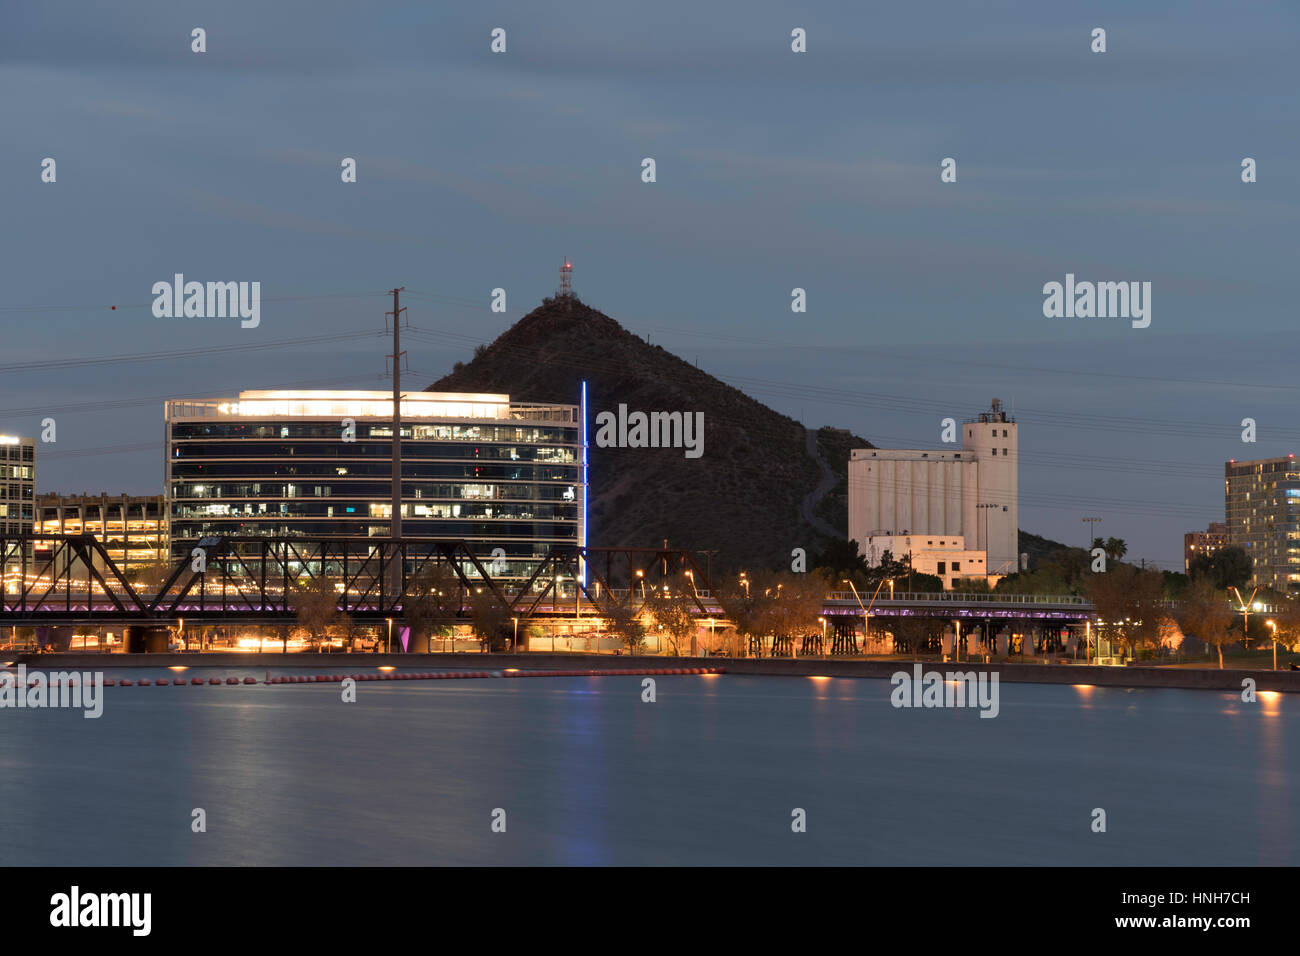 Downtown Tempe With Hayden Flour Mills, A Mountain, And Tempe Town Lake At Night - Stock Image